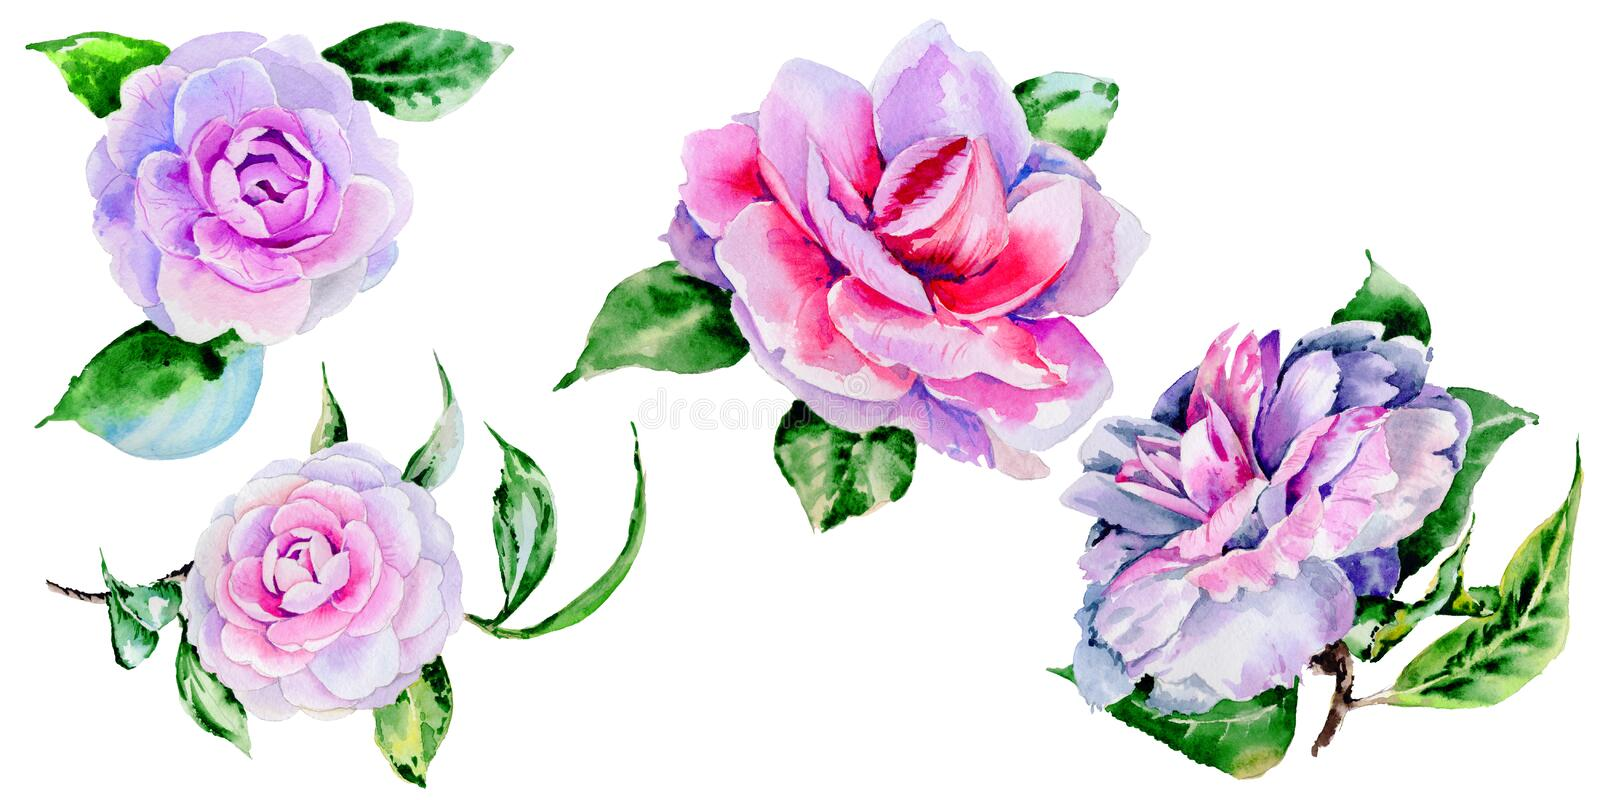 Wildflower peony, camelia flower in a watercolor style isolated. Wildflower peony flower in a watercolor style isolated. Full name of the plant: peony,Peonies stock illustration